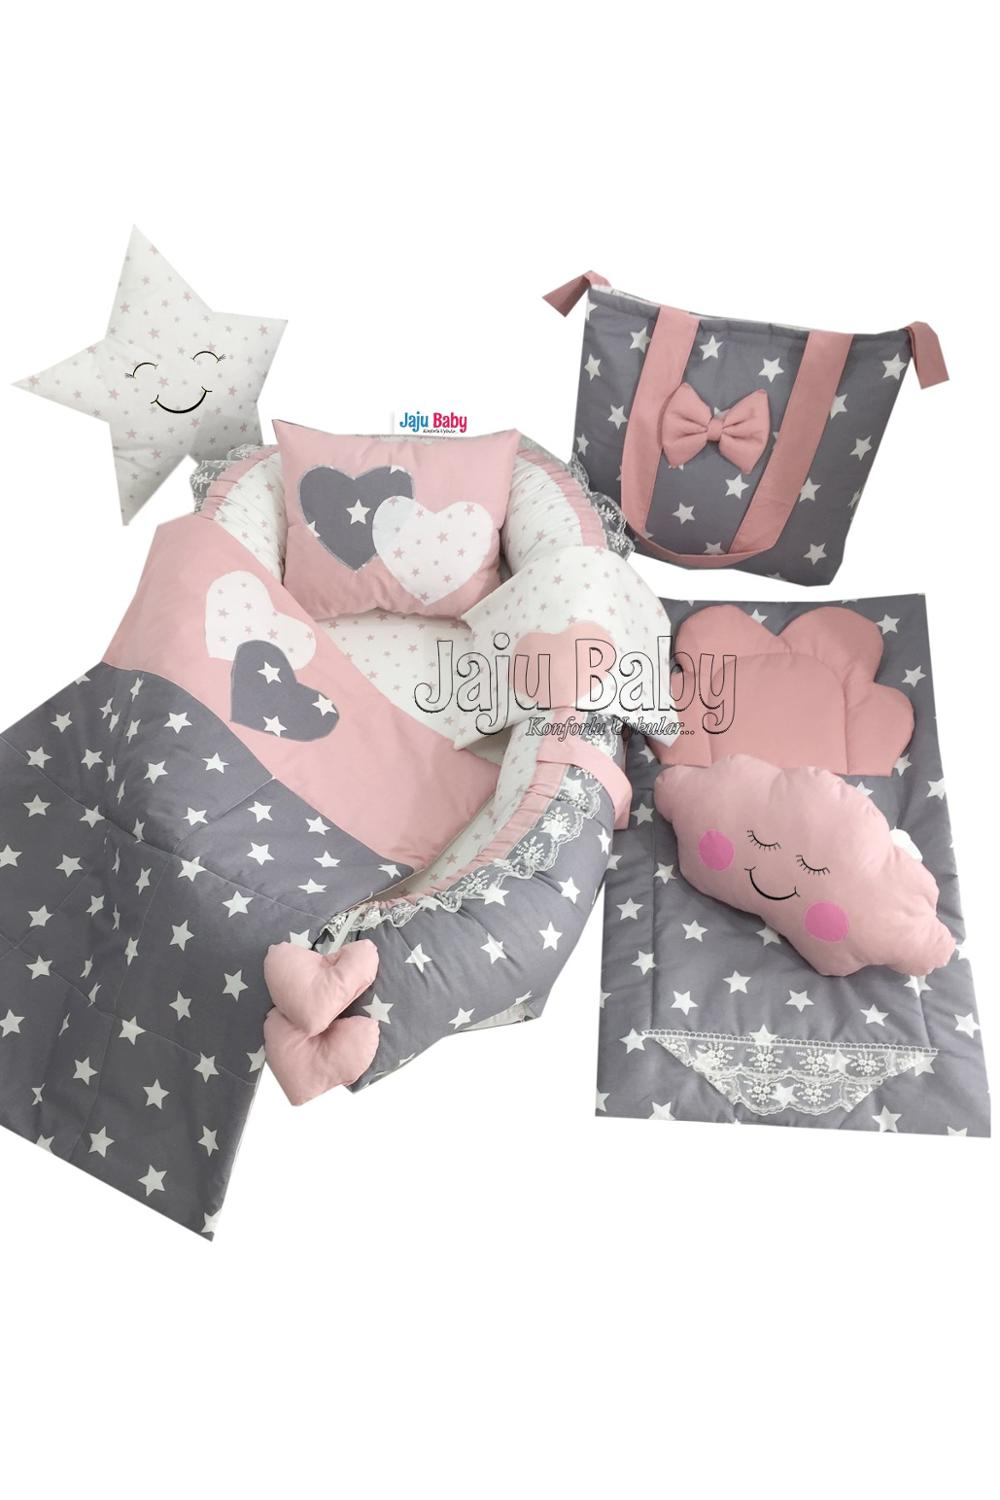 Gray Cloud Luxury Babynest Bedding Set (8 pieces)